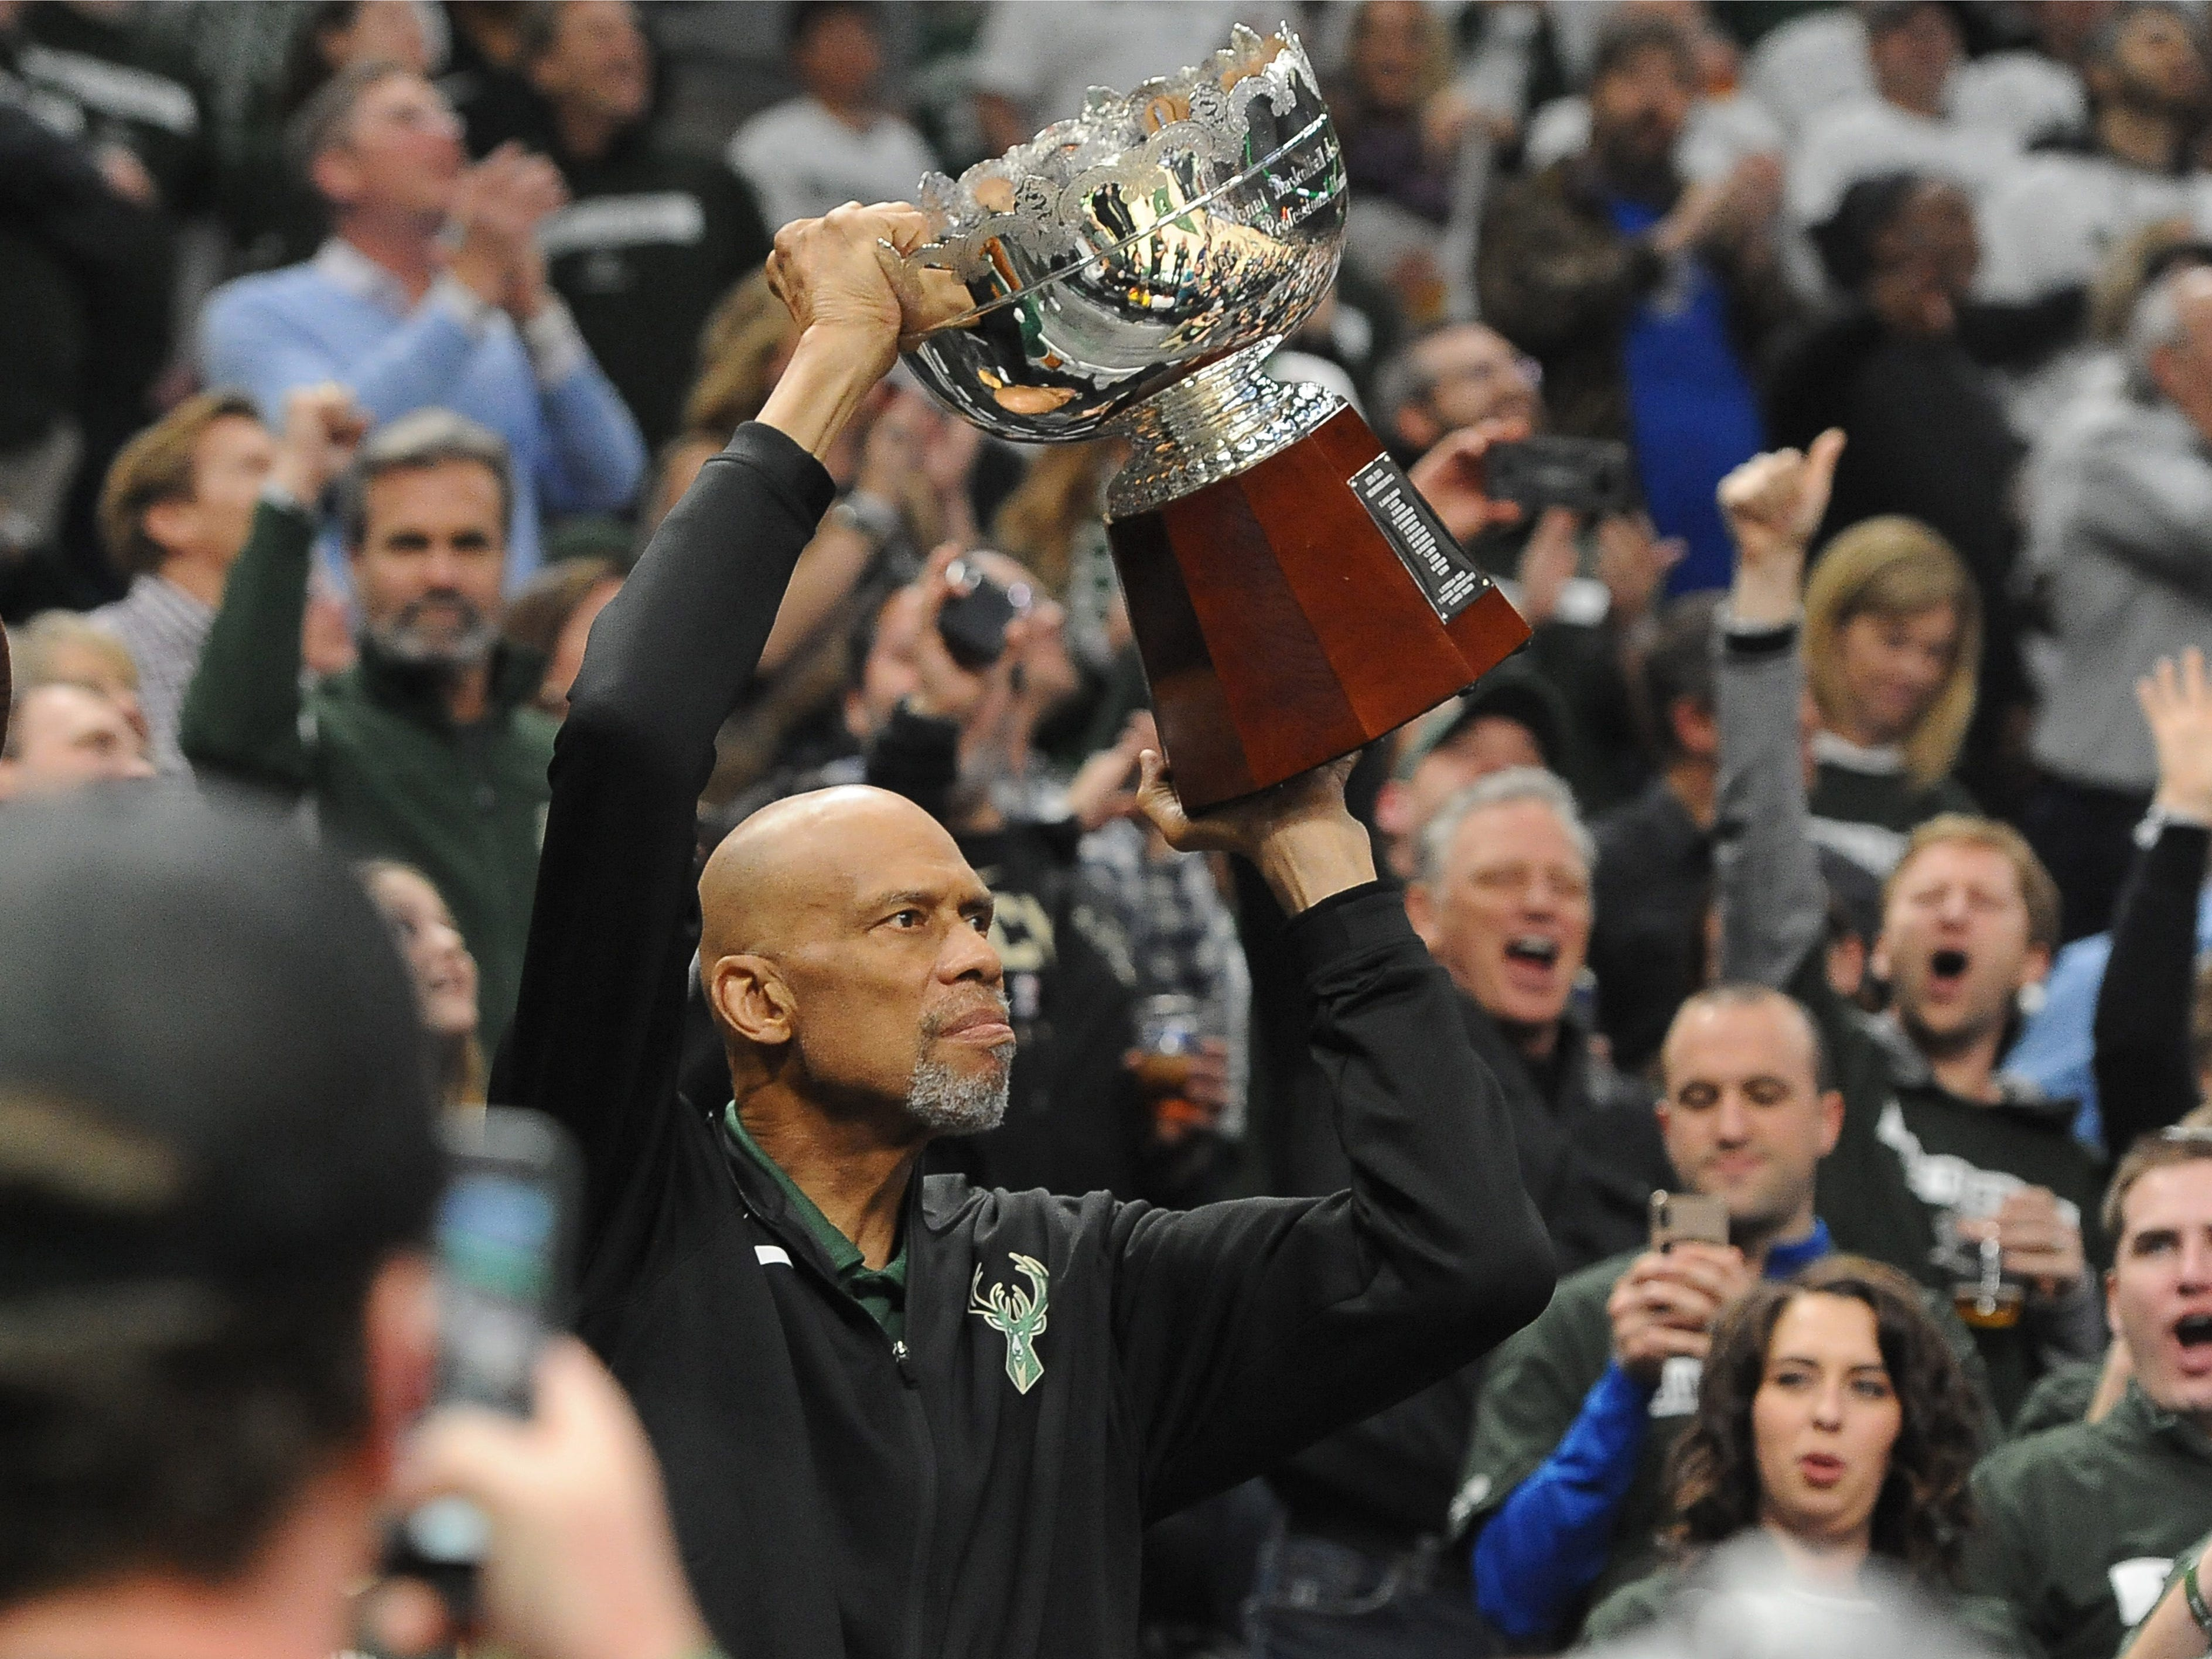 April 14: Hall of Famer Kareem Abdul-Jabbar holds up the 1971 championship trophy during a break in Game 1 between the Bucks and Pistons in Milwaukee.